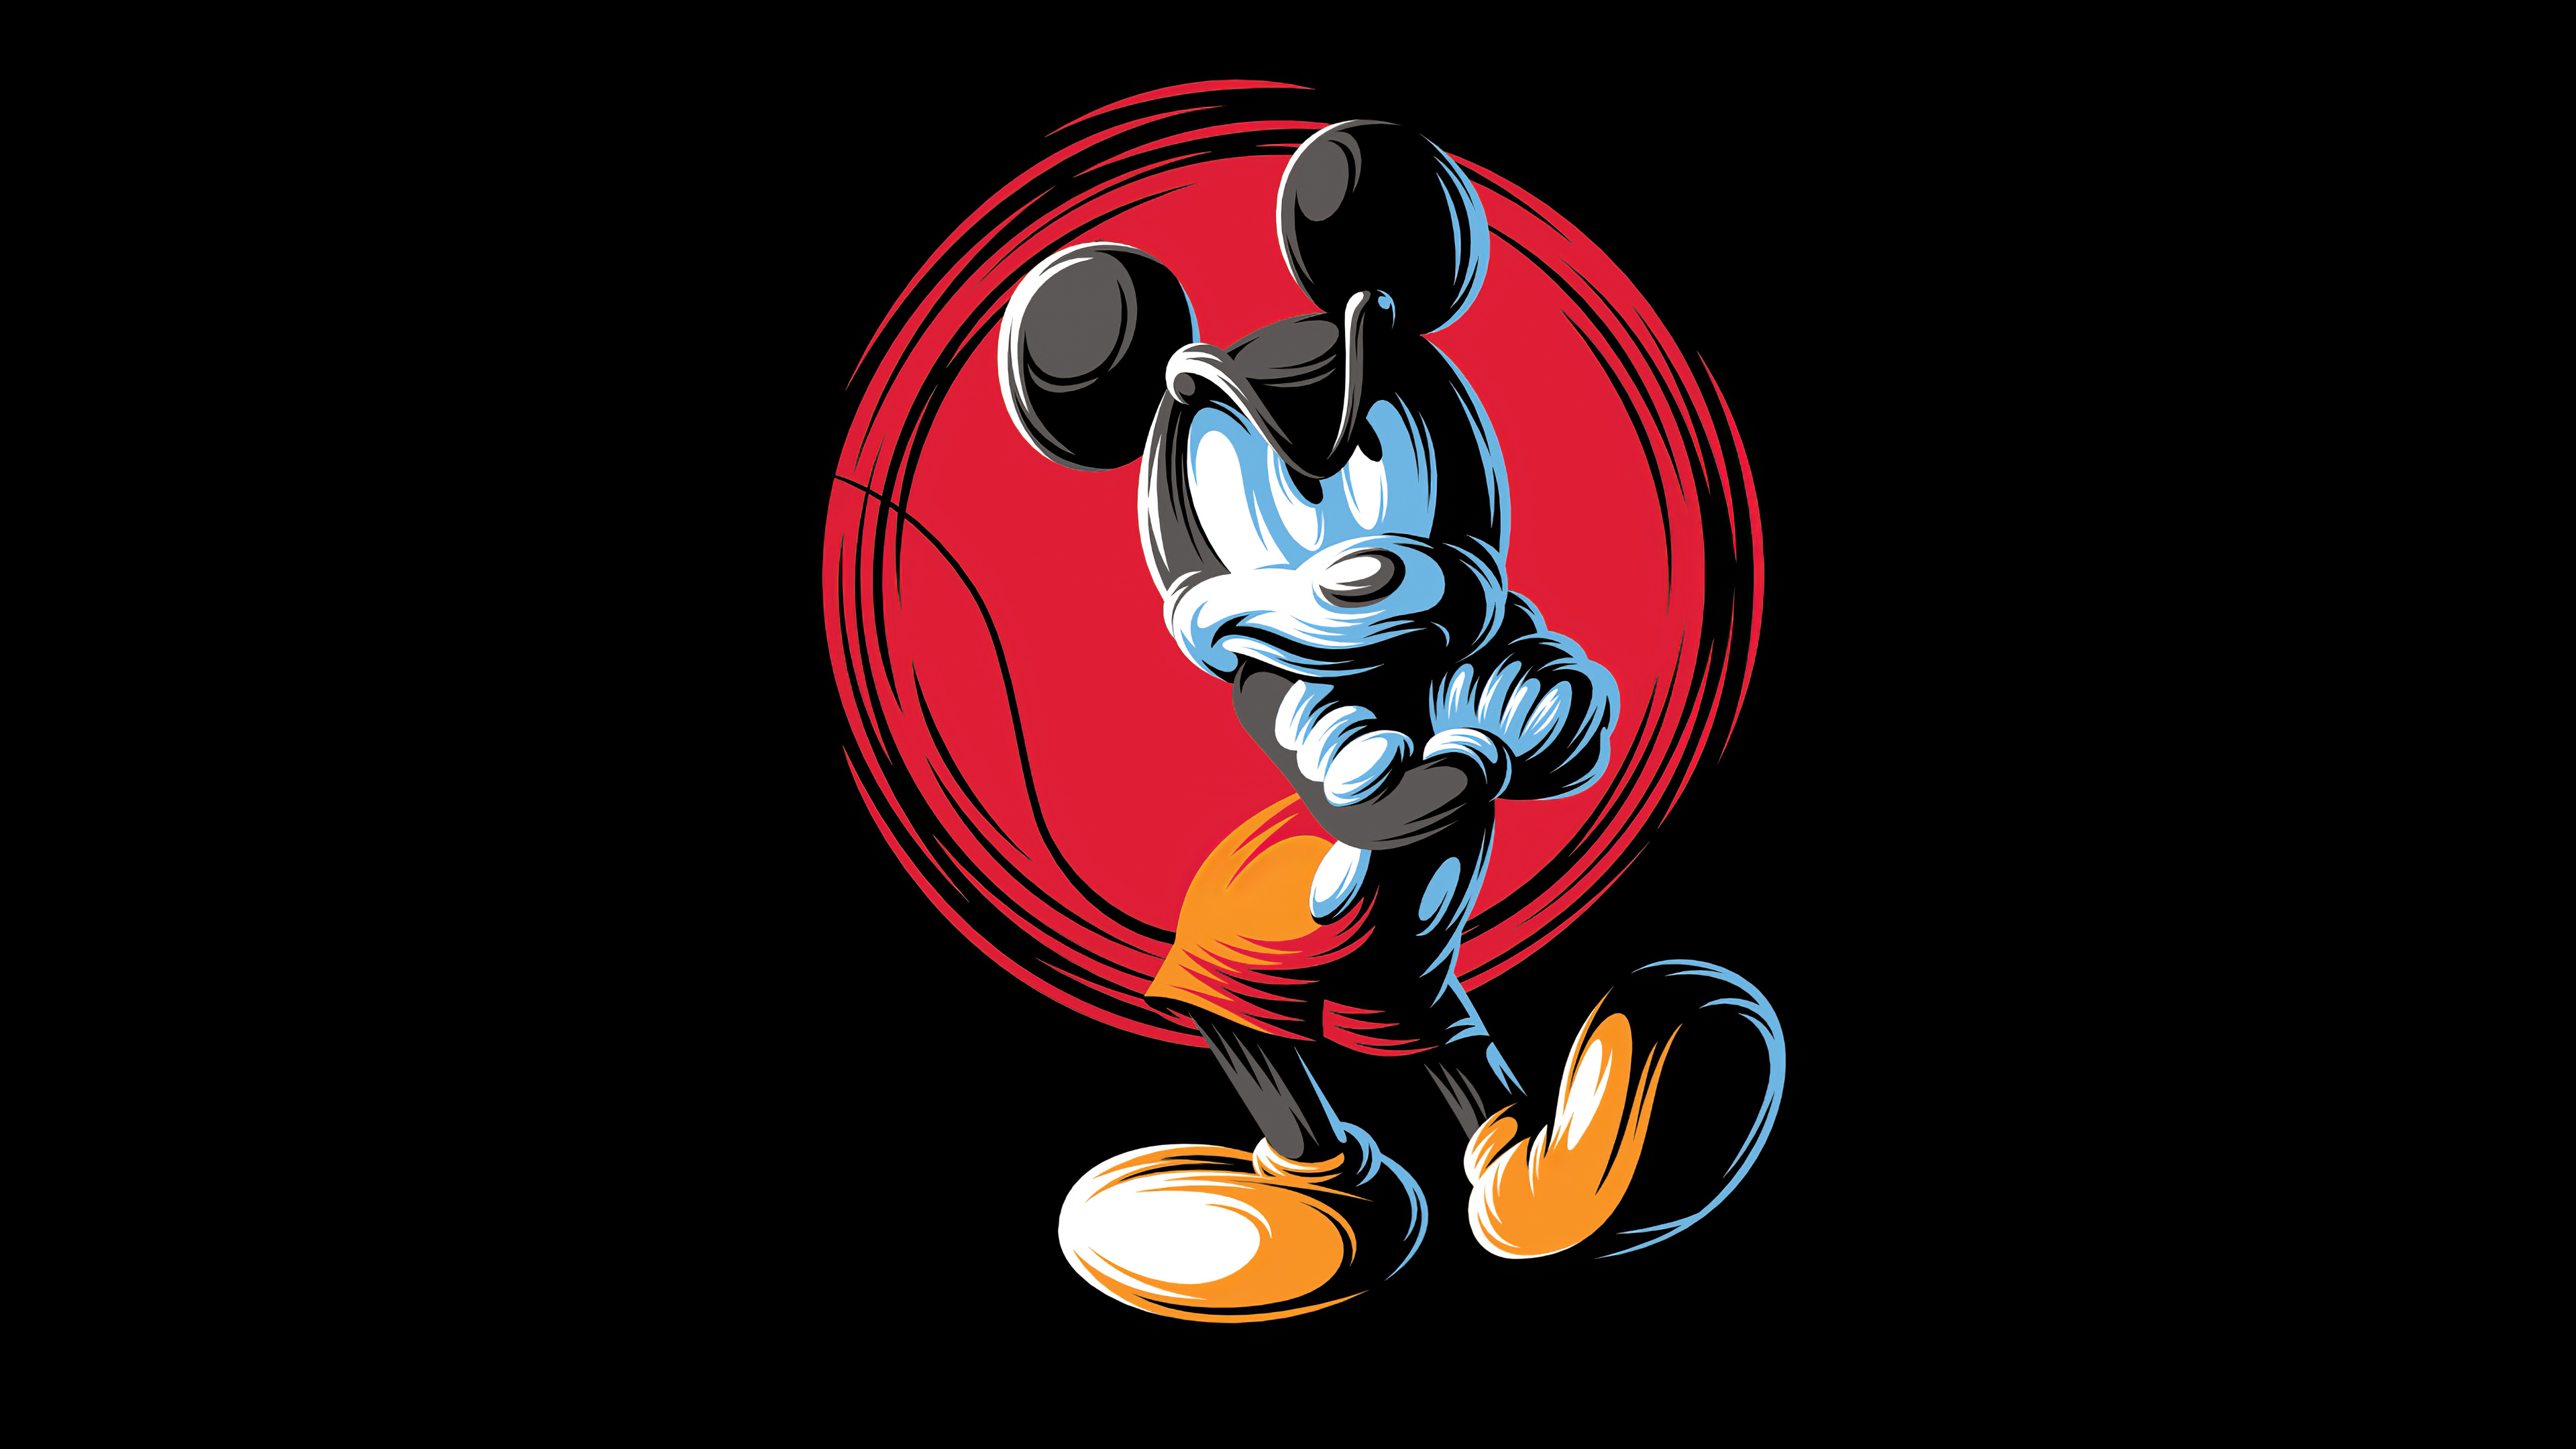 Mickey Mouse Minimal Art 4k Hd Cartoons 4k Wallpapers Images